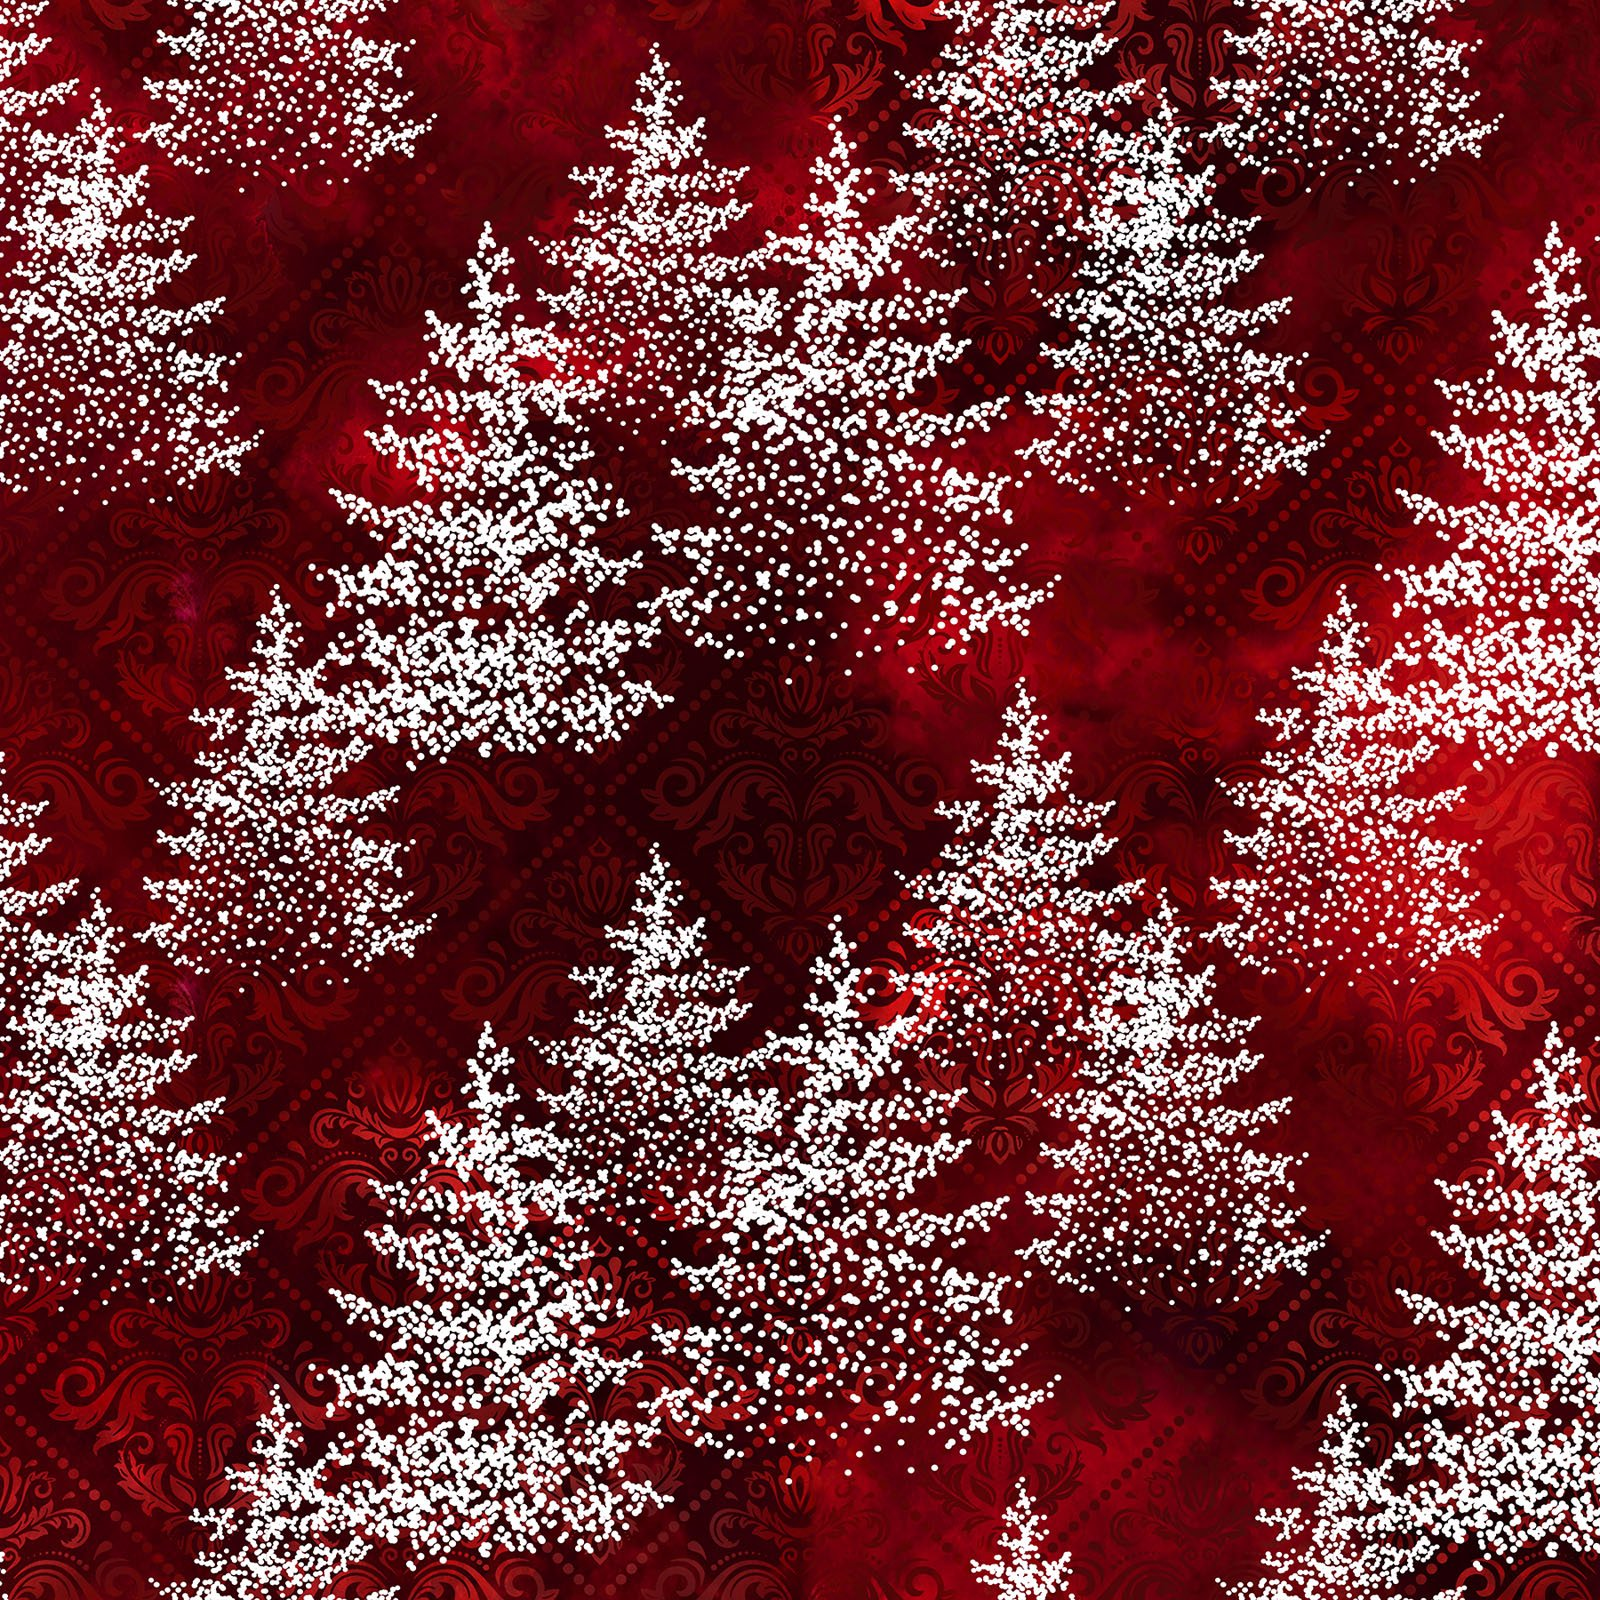 INTH-7WAW 2 - WINTER AROUND THE WORLD BY JASON YENTER TREES RED